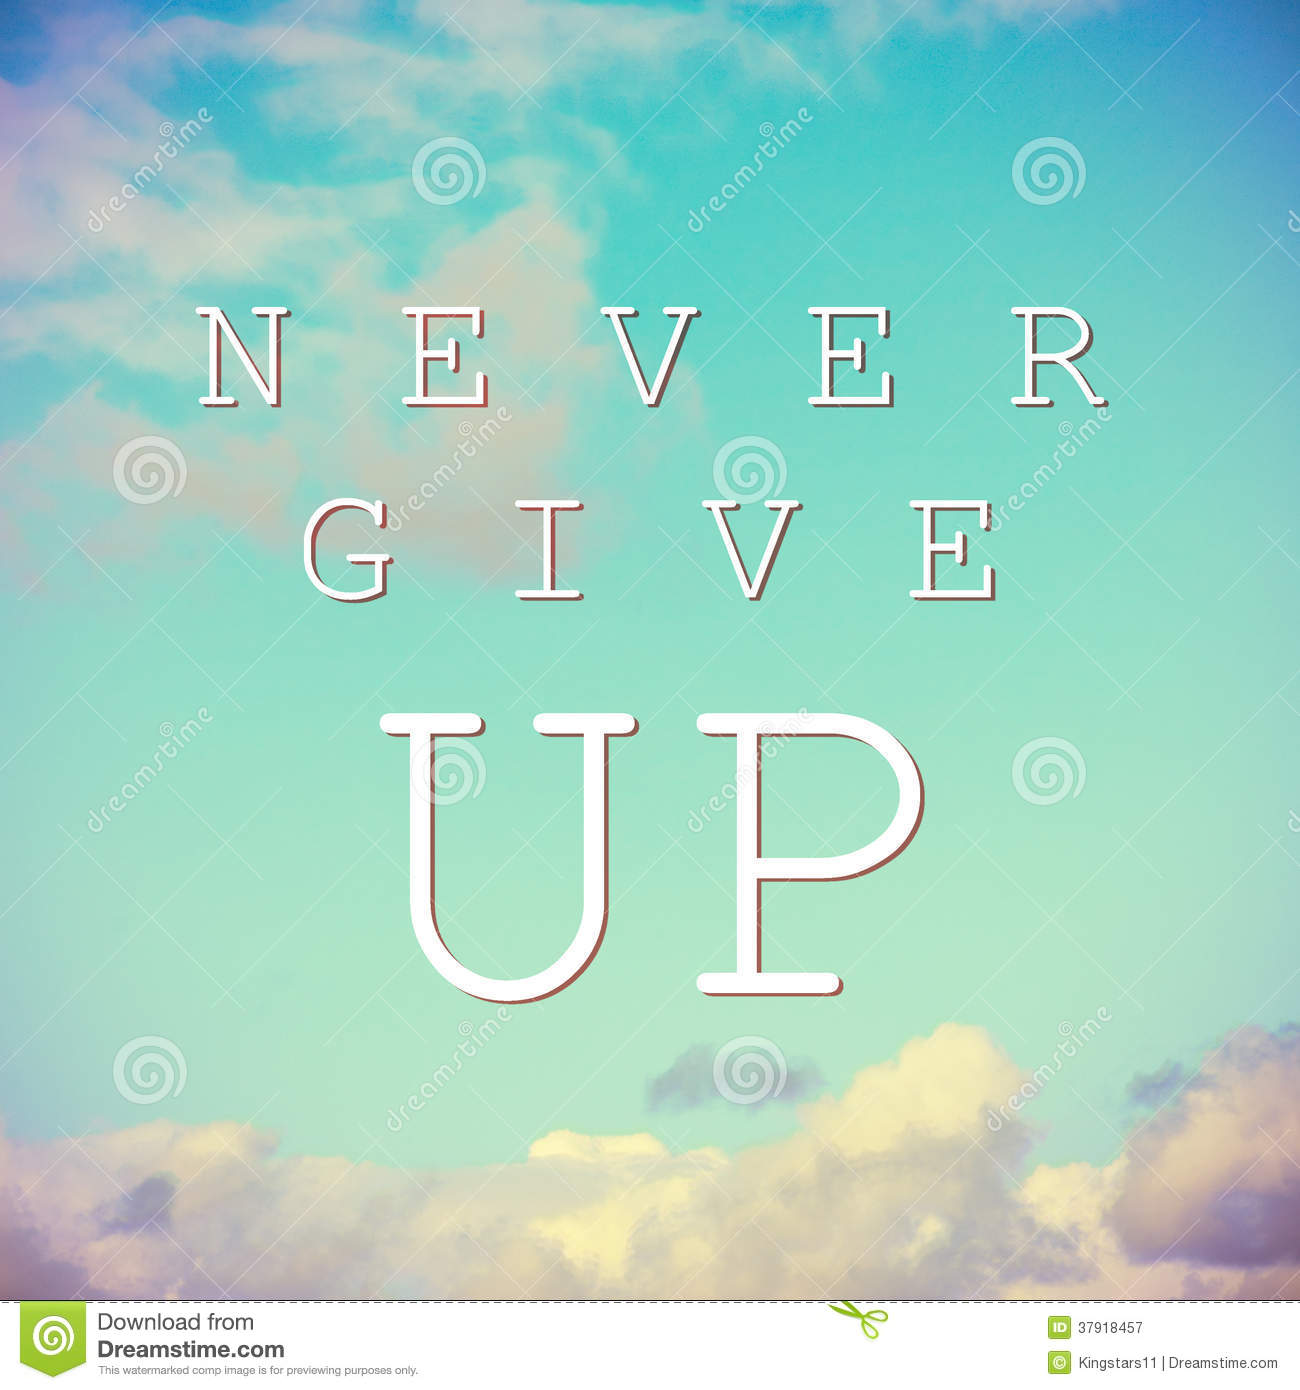 Download Free Encouragement Wallpaper Quotes Inspirational Quote On Vintage Sky Background Stock Image